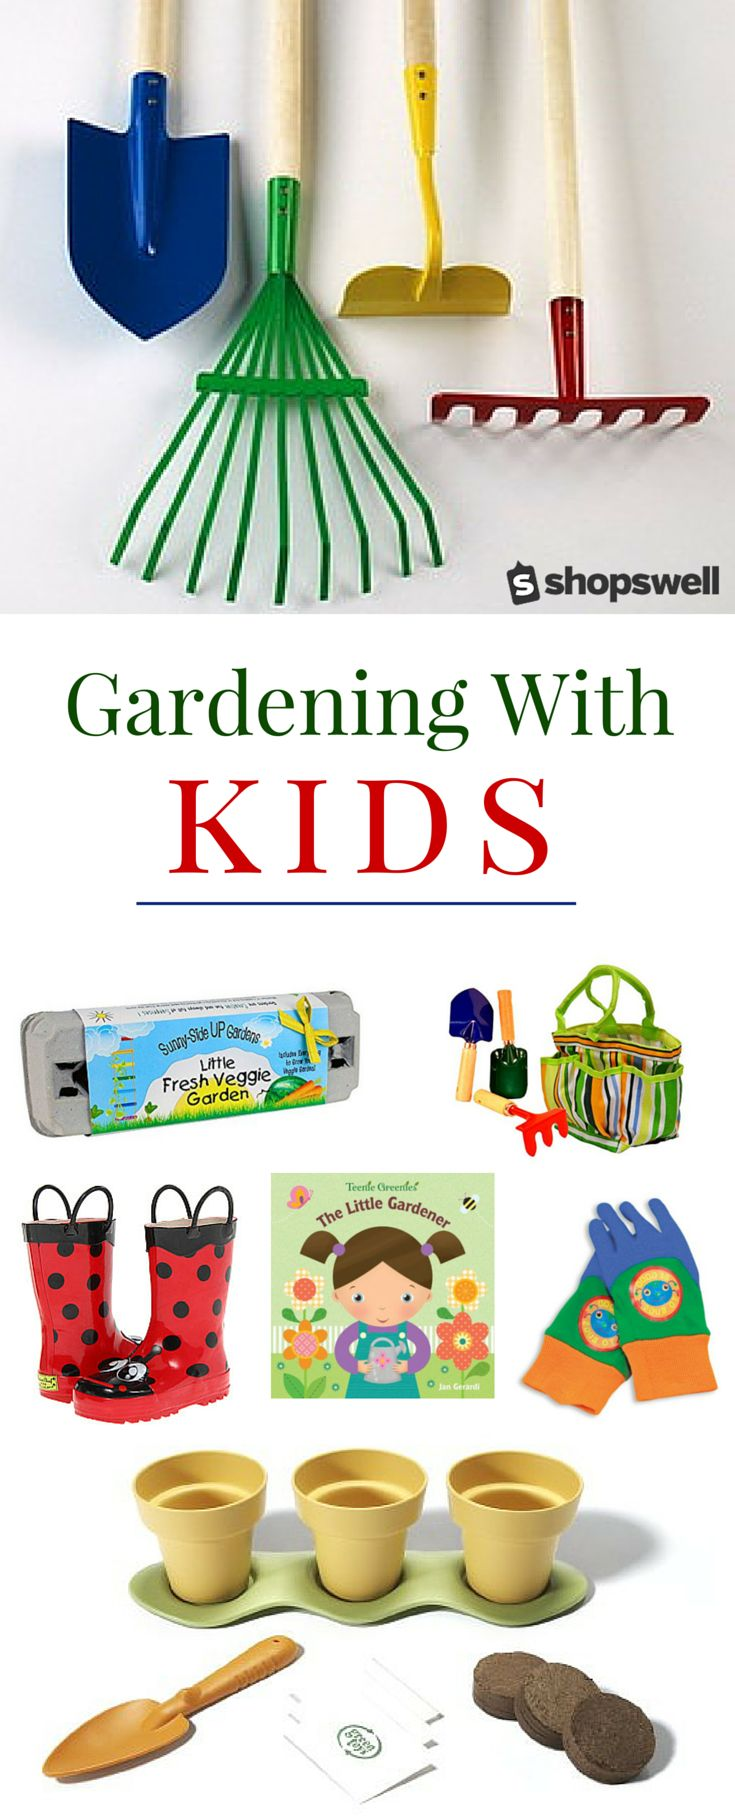 Ready to cultivate a love of gardening in your kiddos? From gardening tools, to books that teach kids about the growing process - here you'll find everything you need to encourage your kids to develop a green thumb of their own.